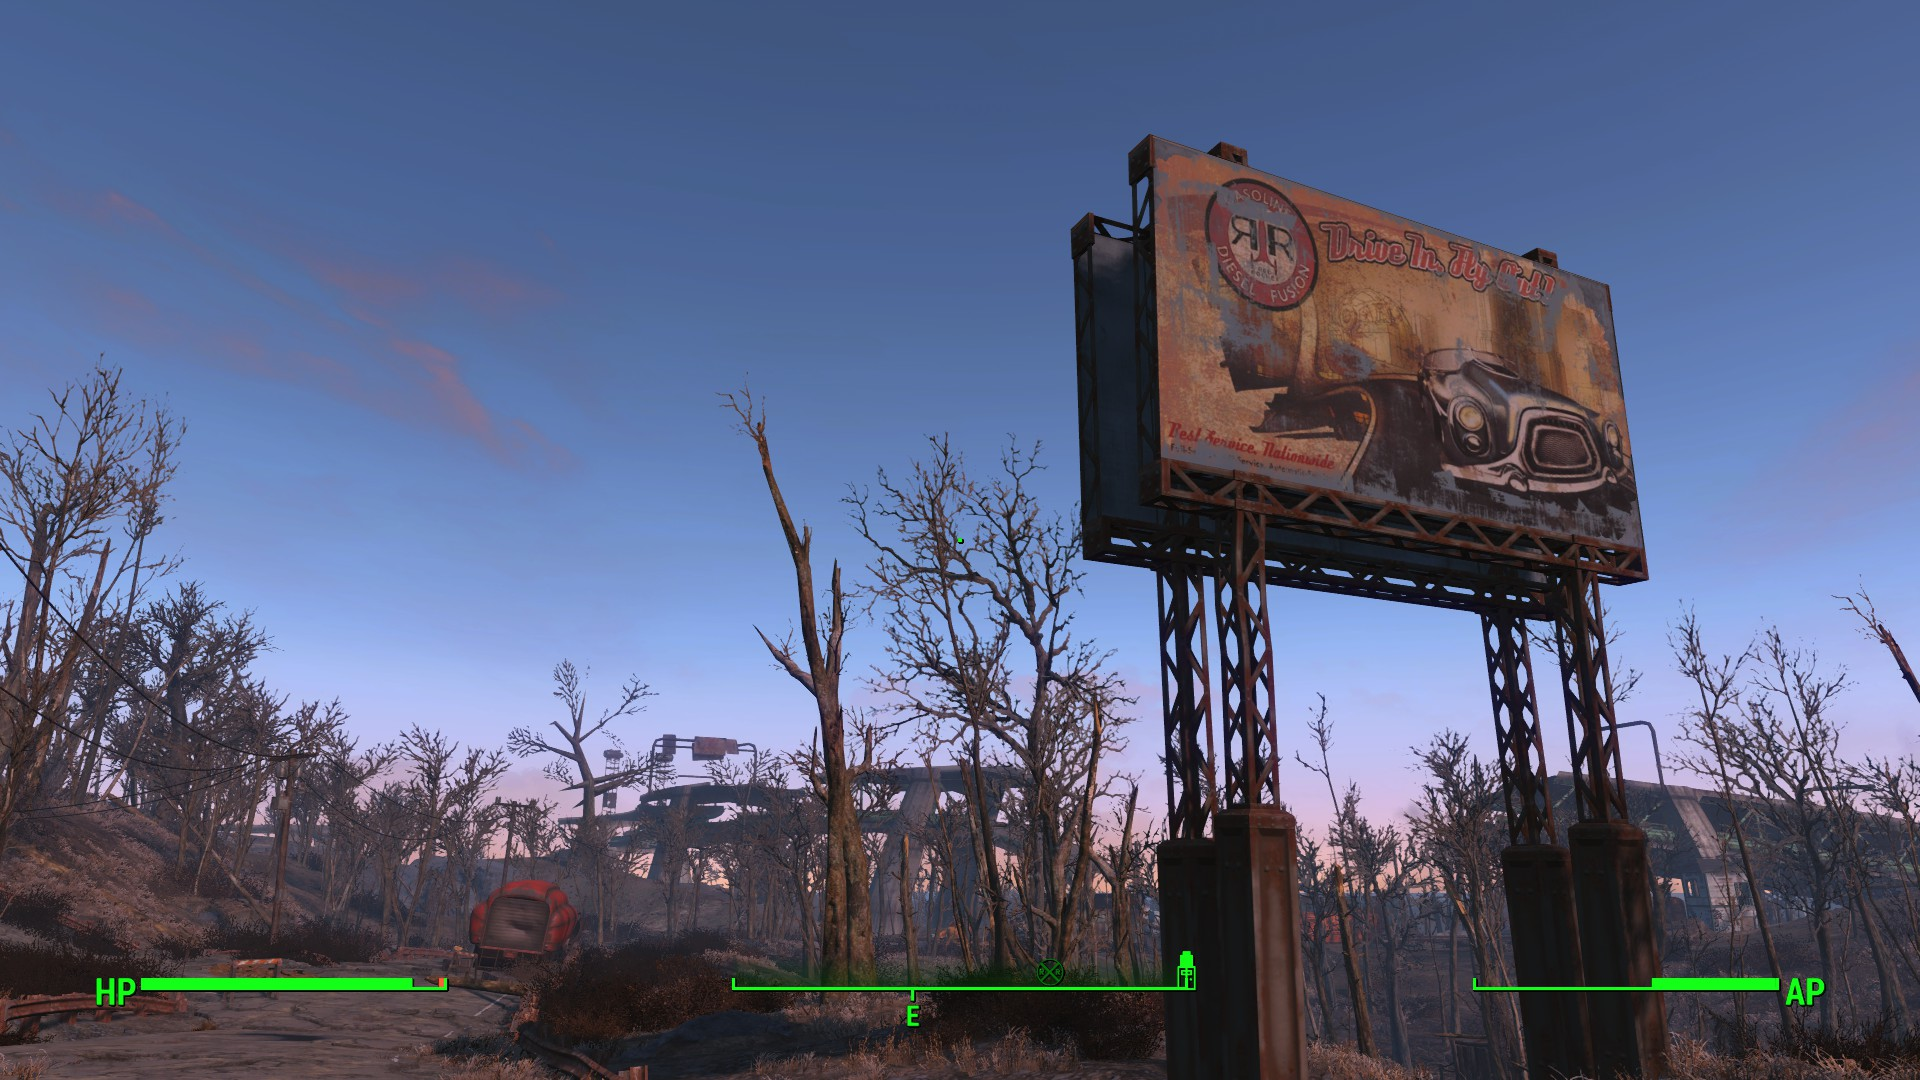 Fallout 4 Ultra Detail PC Screenshots have been leaked